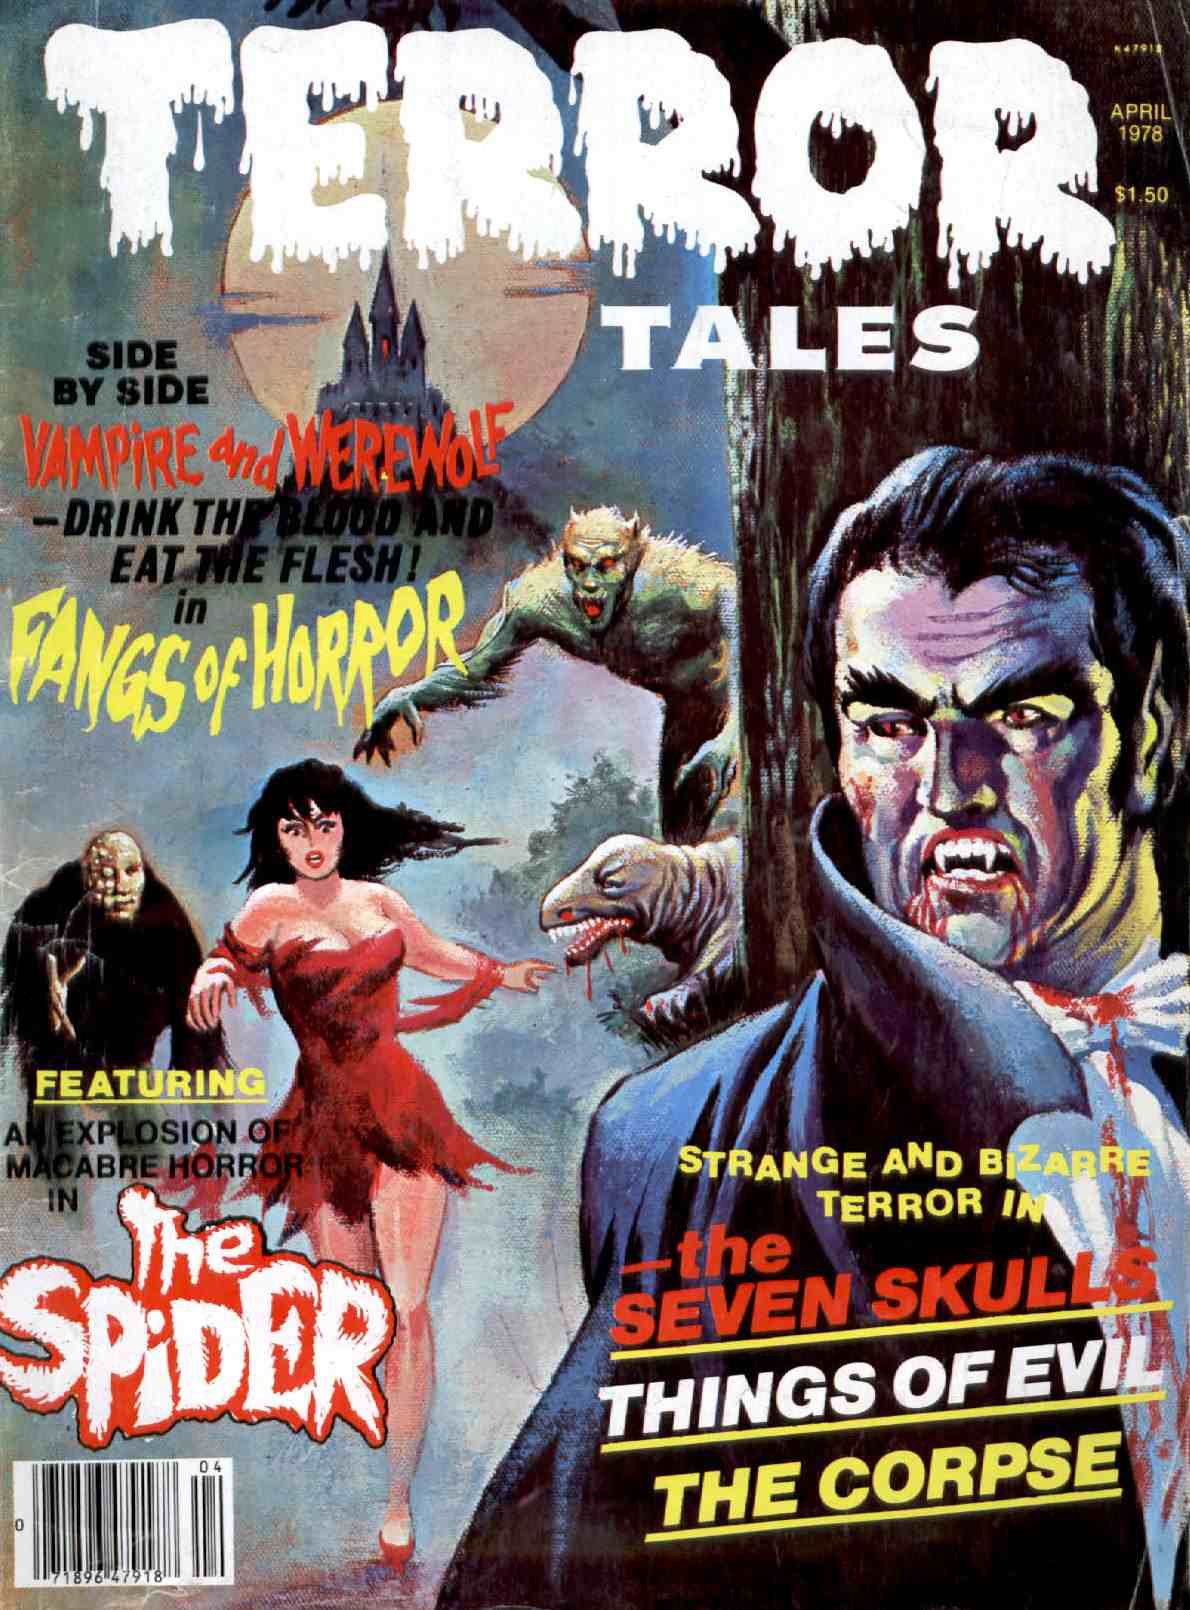 Terror Tales Vol. 09 #2 (Eerie Publications, 1978)